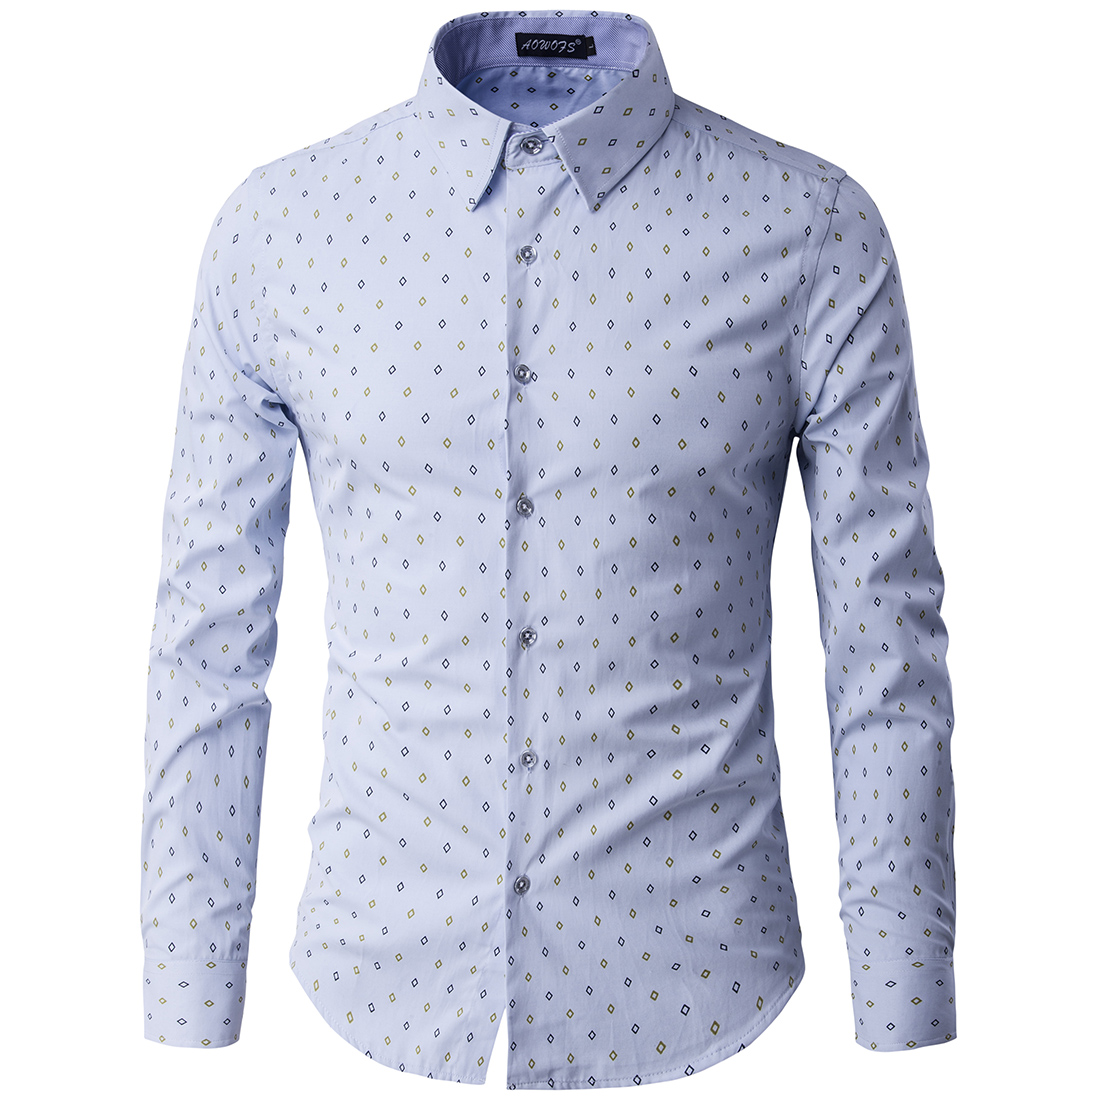 Each Assorted lot of these Mens Spring and Summer Clothes, will have a nice variety of: Polo Shirts, T-Shirts, Shorts, Dress Shirts, Denim, Jeans, Short Sleeve Shirts, and much more.